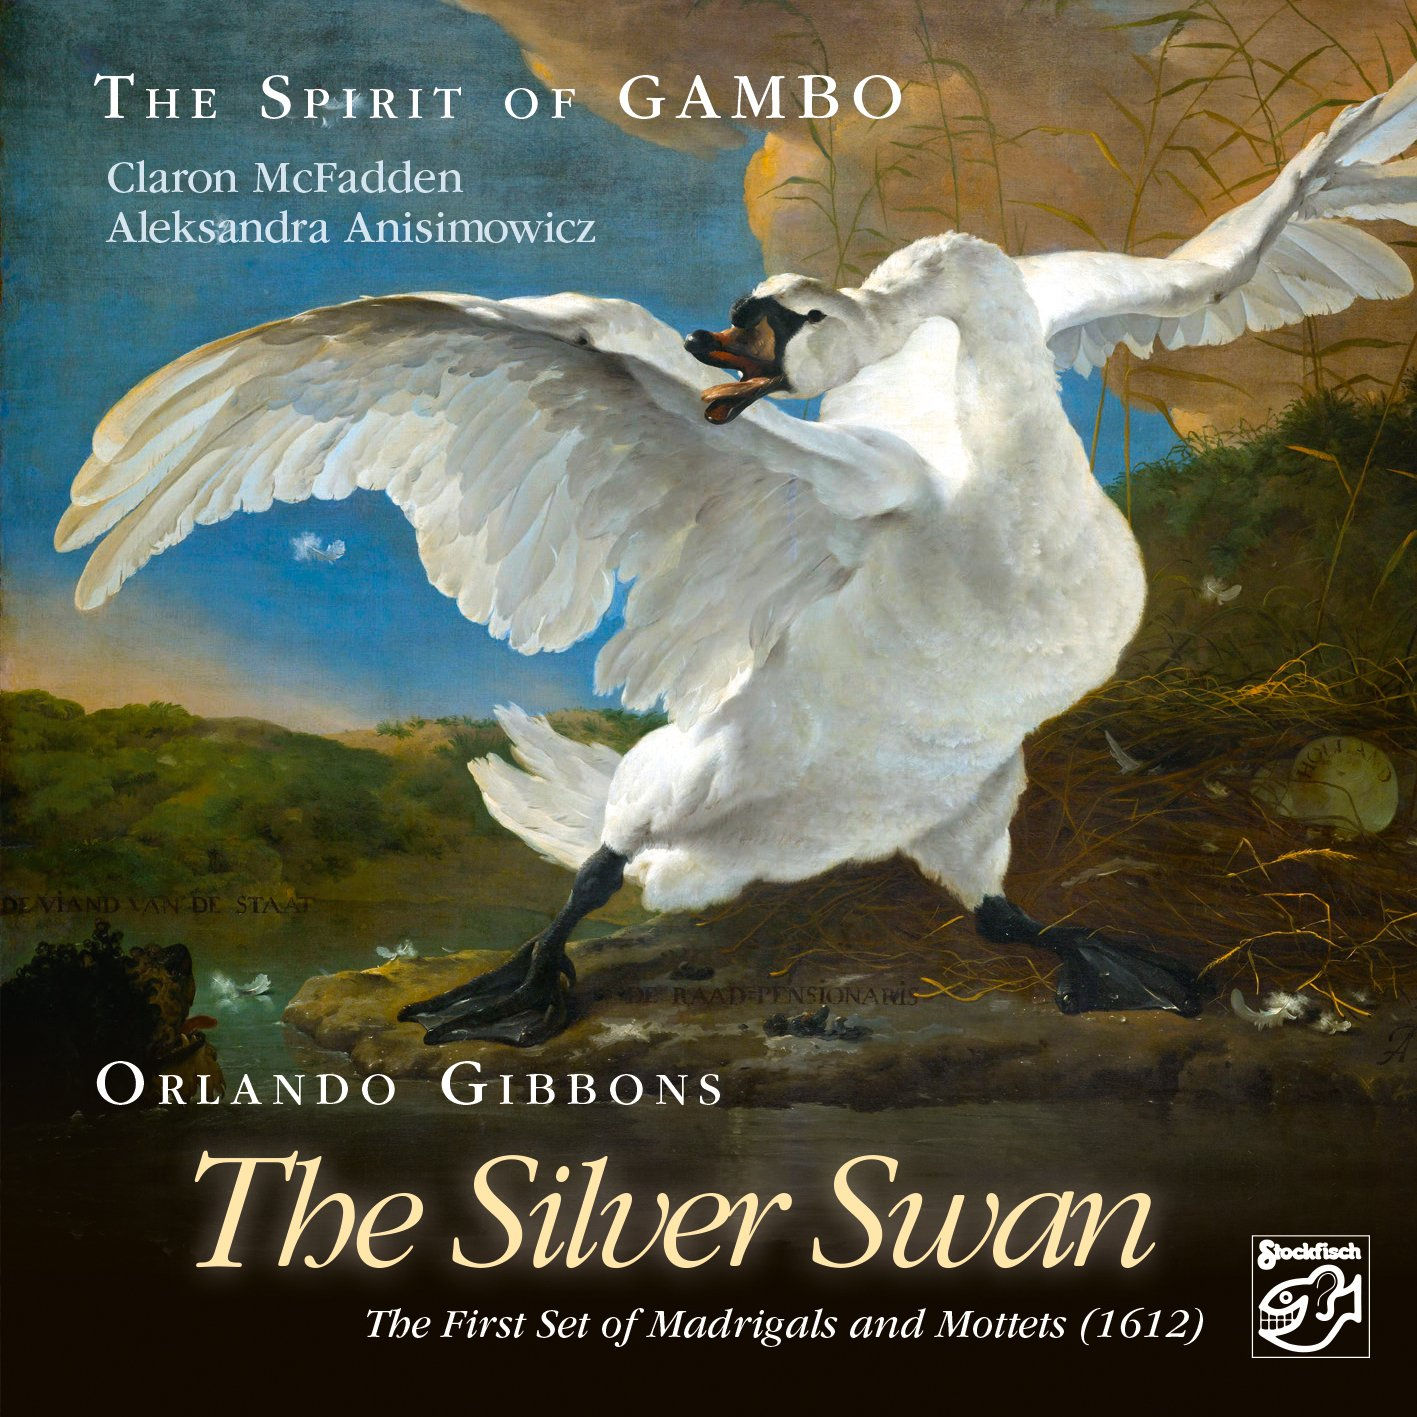 ORLANDO GIBBONS THE SILVER SWAN